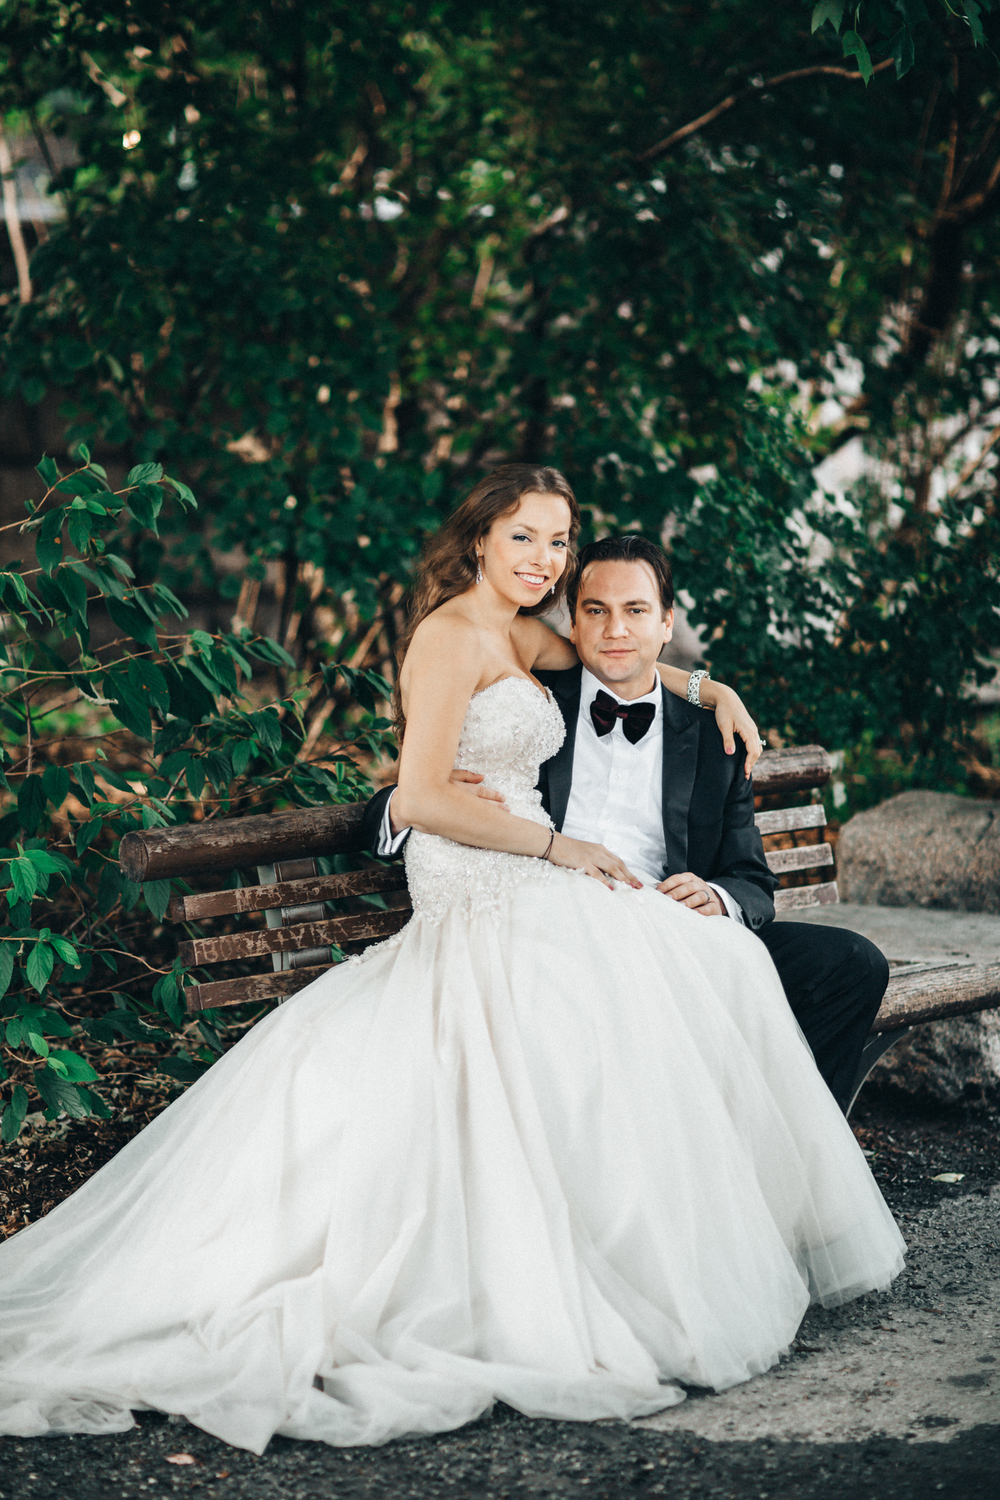 New York Wedding Photographer Boris Zaretsky Boris_Zaretsky_Photography__B2C6581 copy.jpg